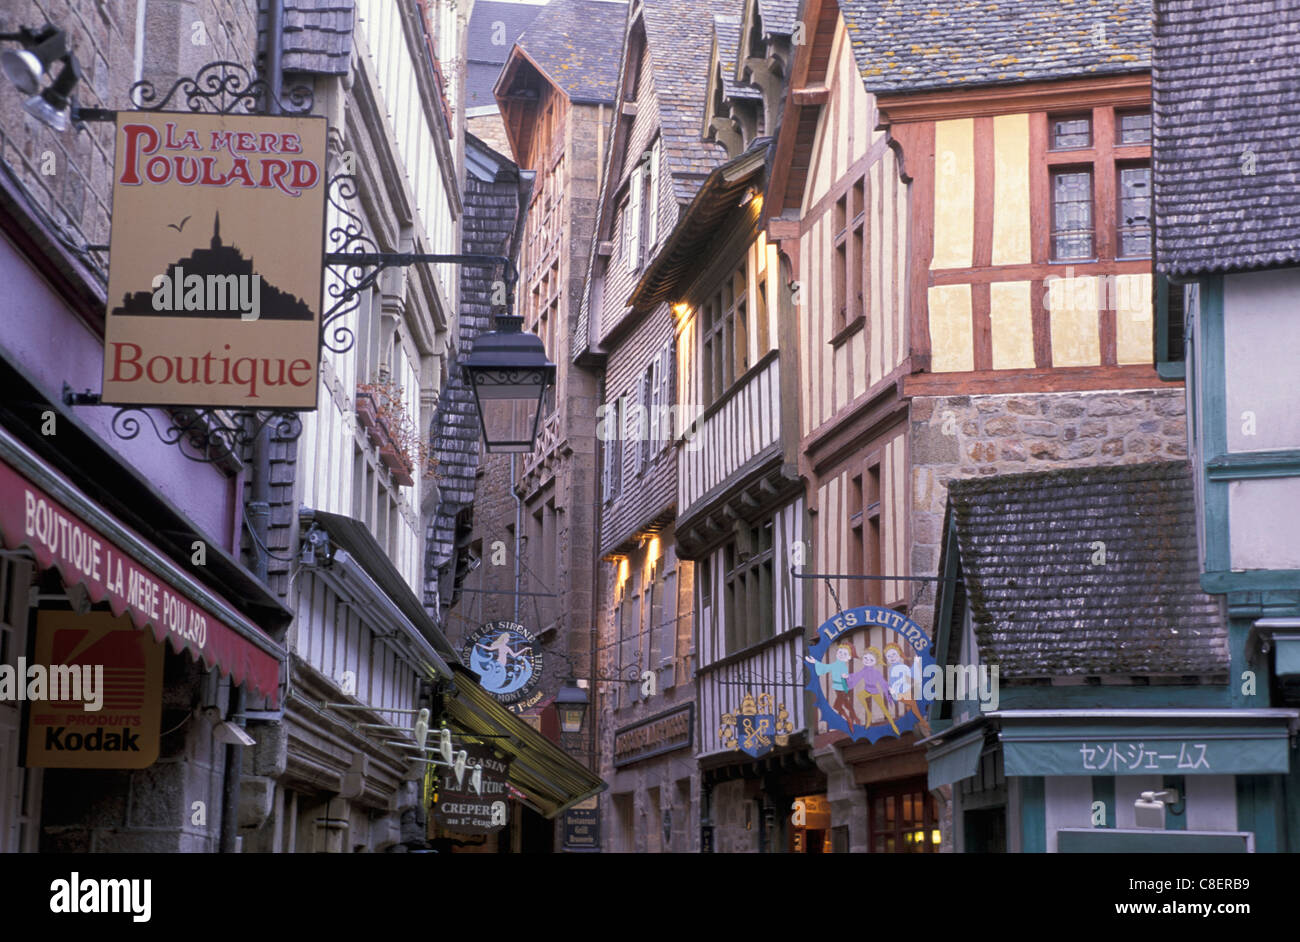 Grande rue, Mont St. Michel, Normandie, France, Europe, houses - Stock Image